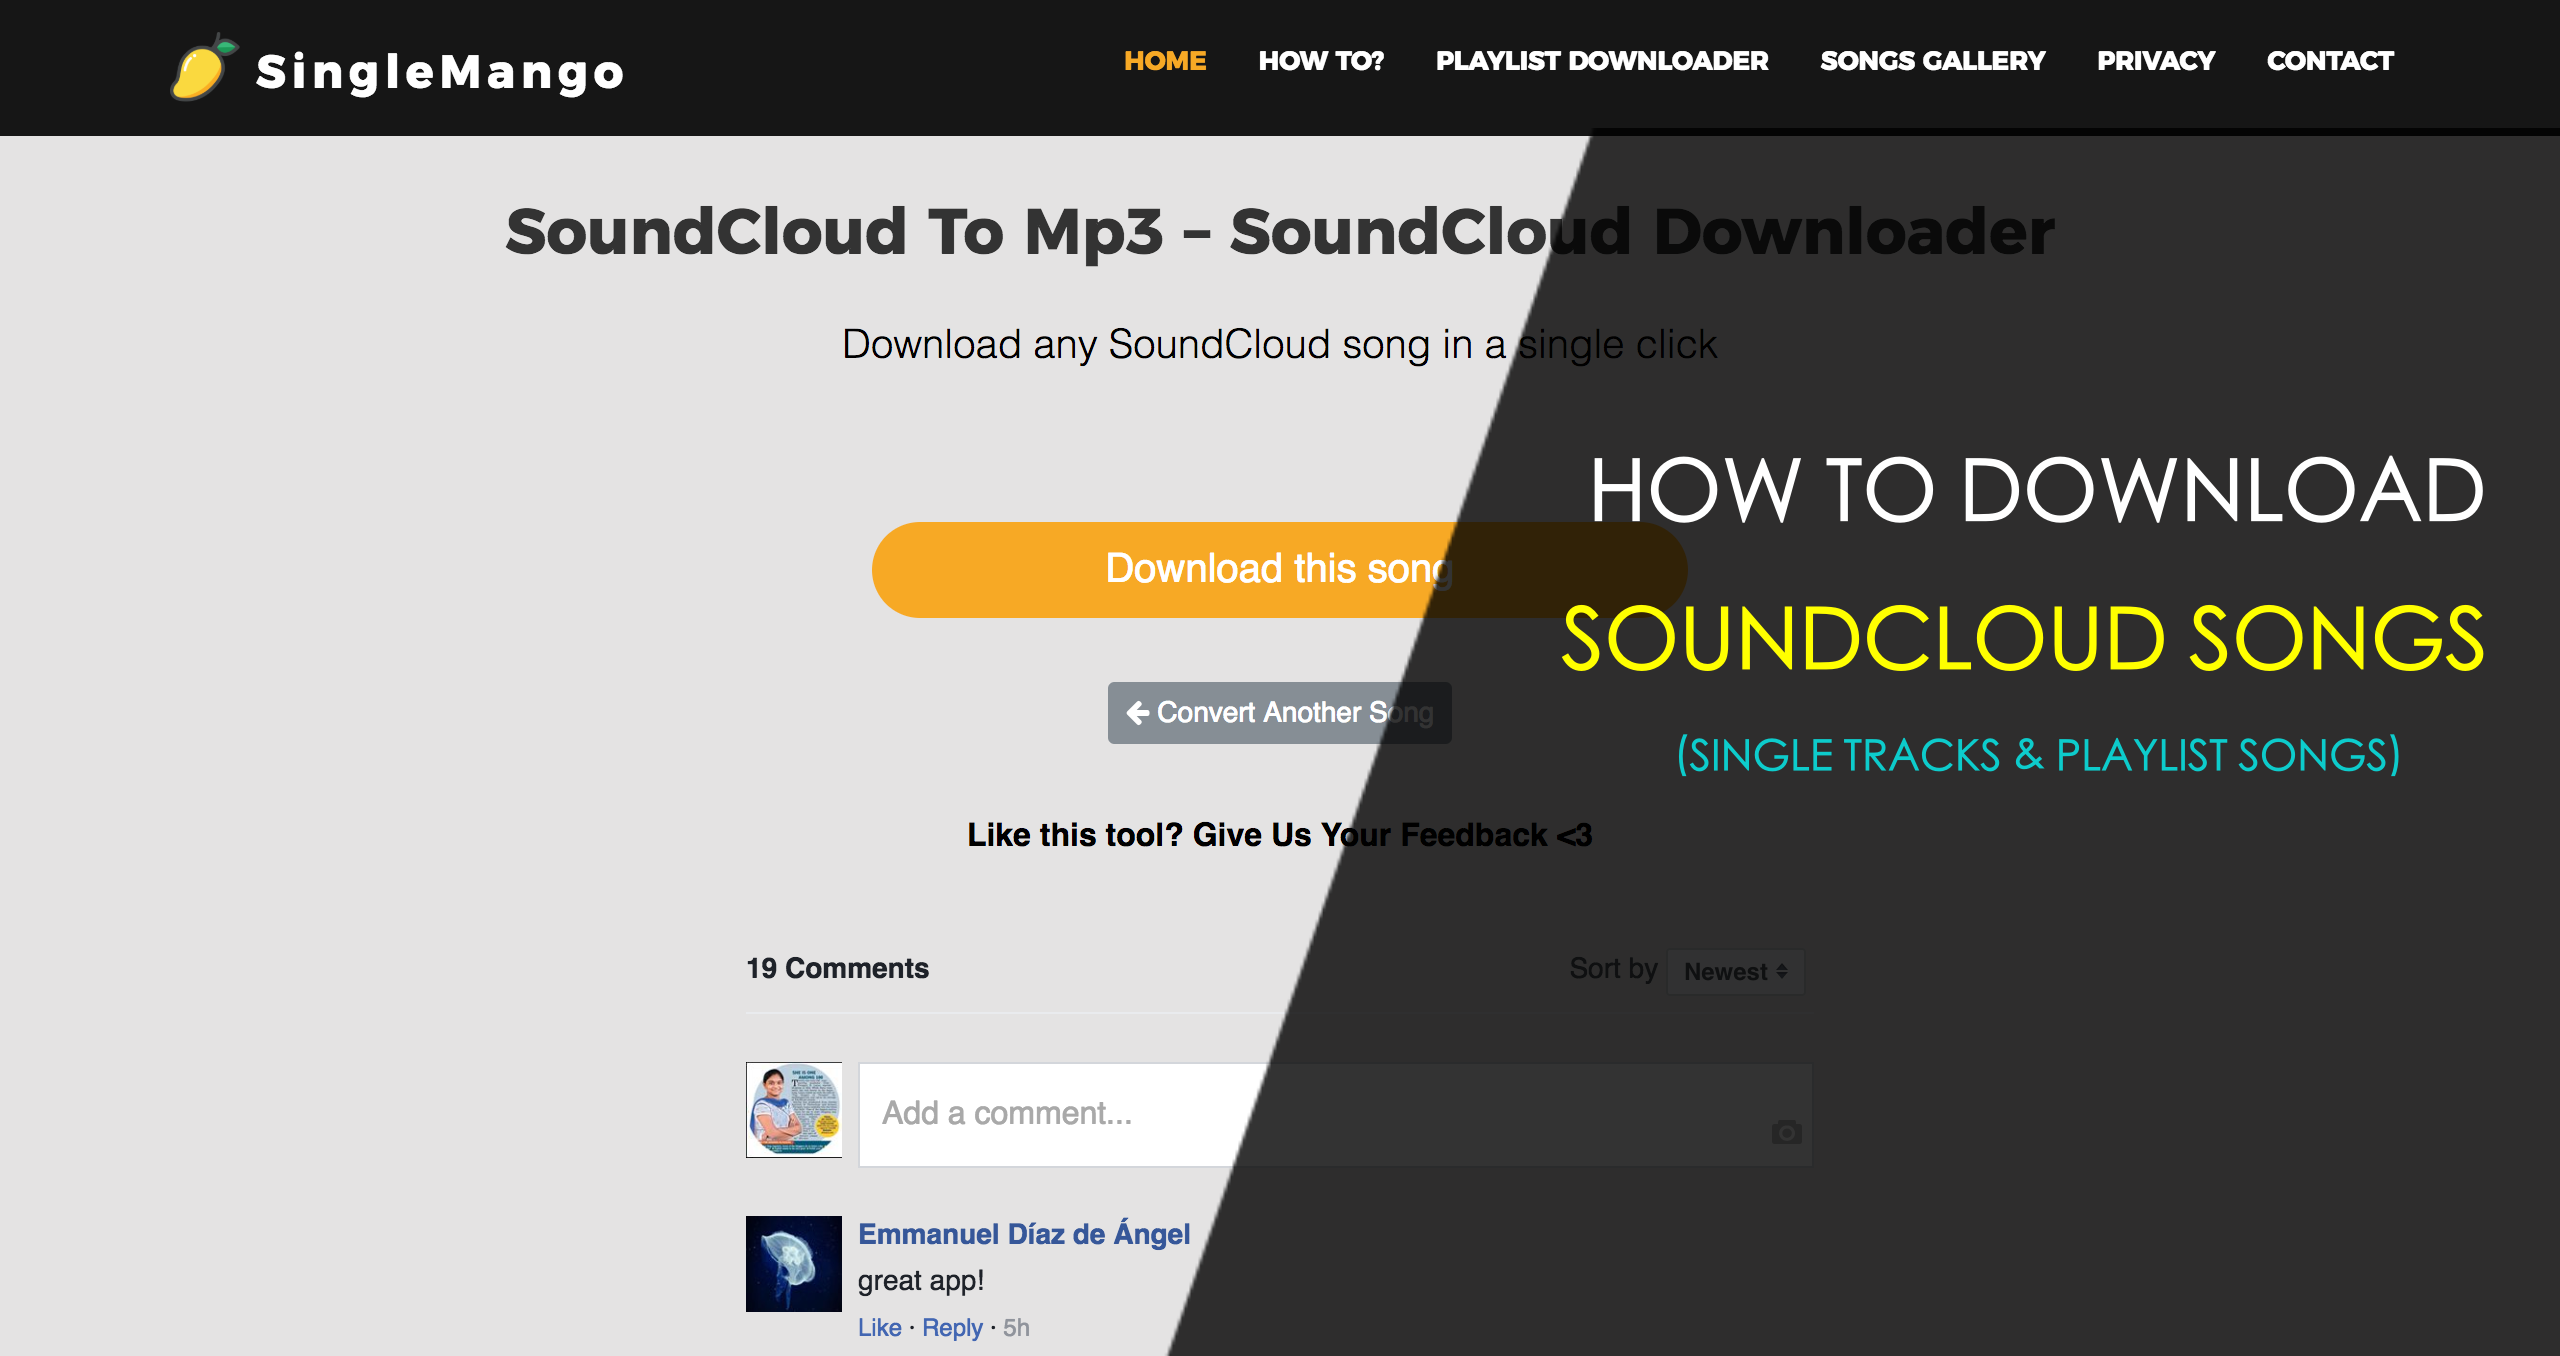 download-soundcloud-songs-single-tracks-playlist-songs-from-singlemango-website-tool